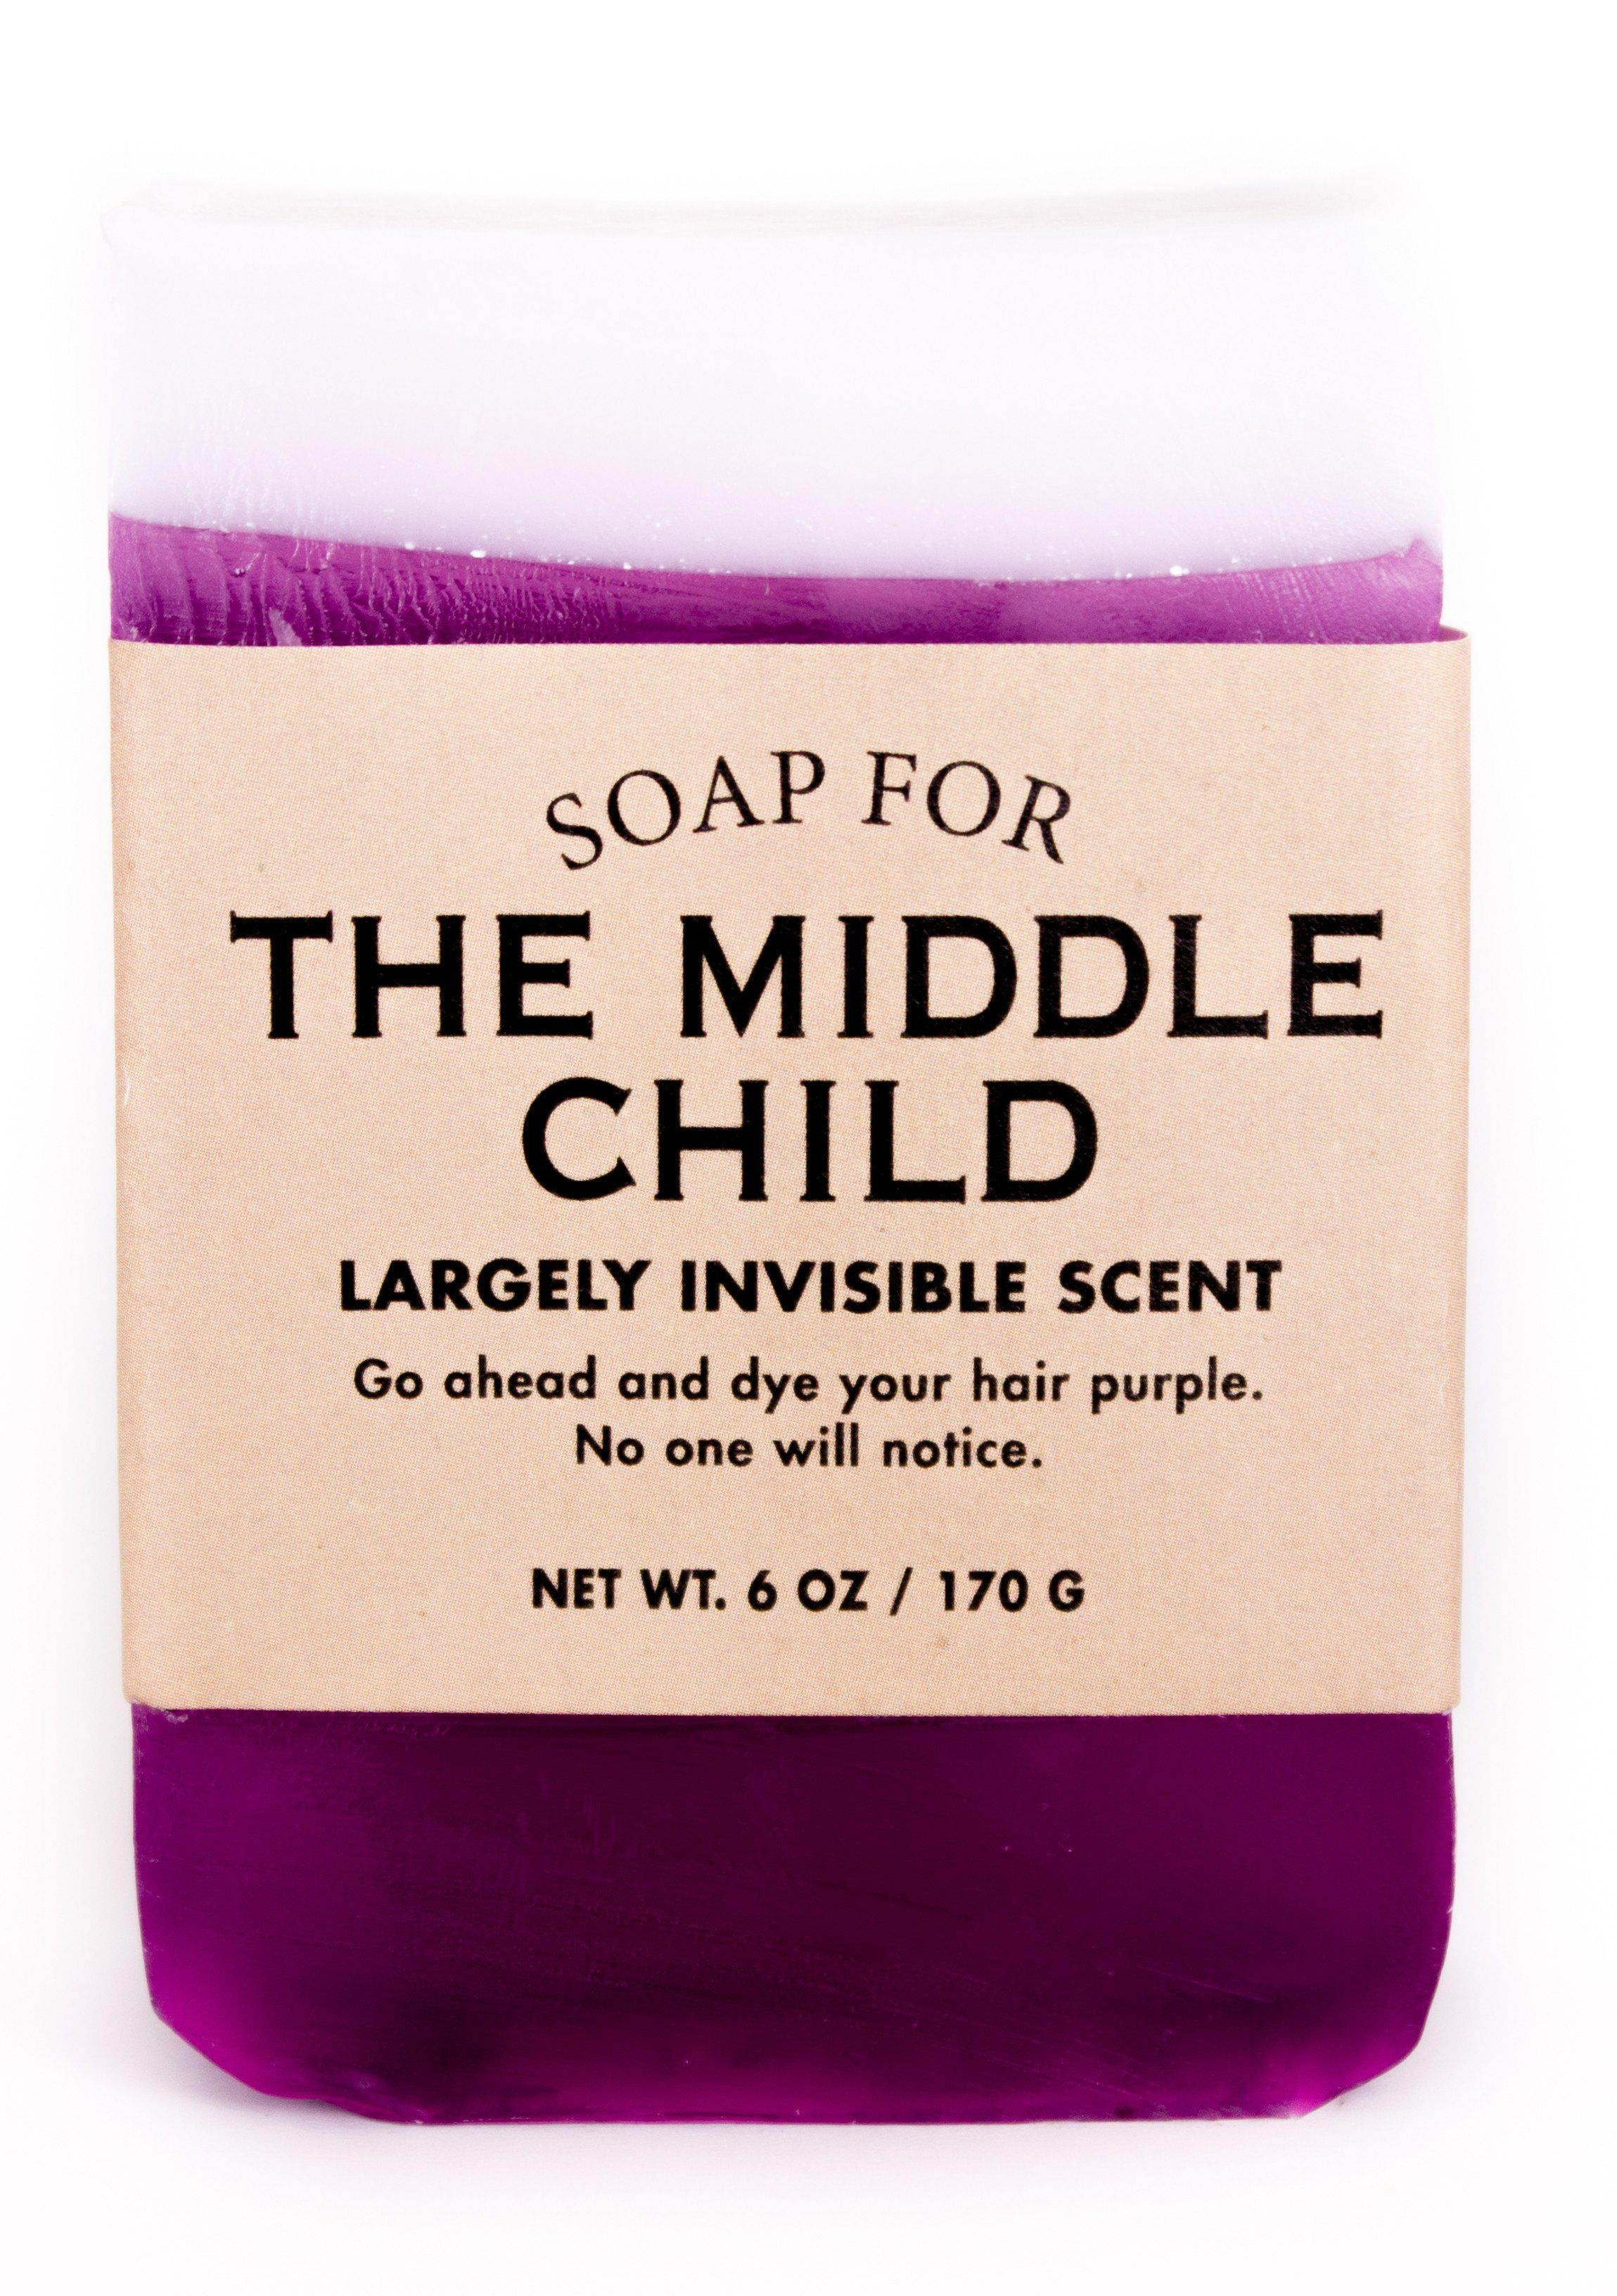 Soap for The Middle Child - BEST SELLER #middlechildhumor